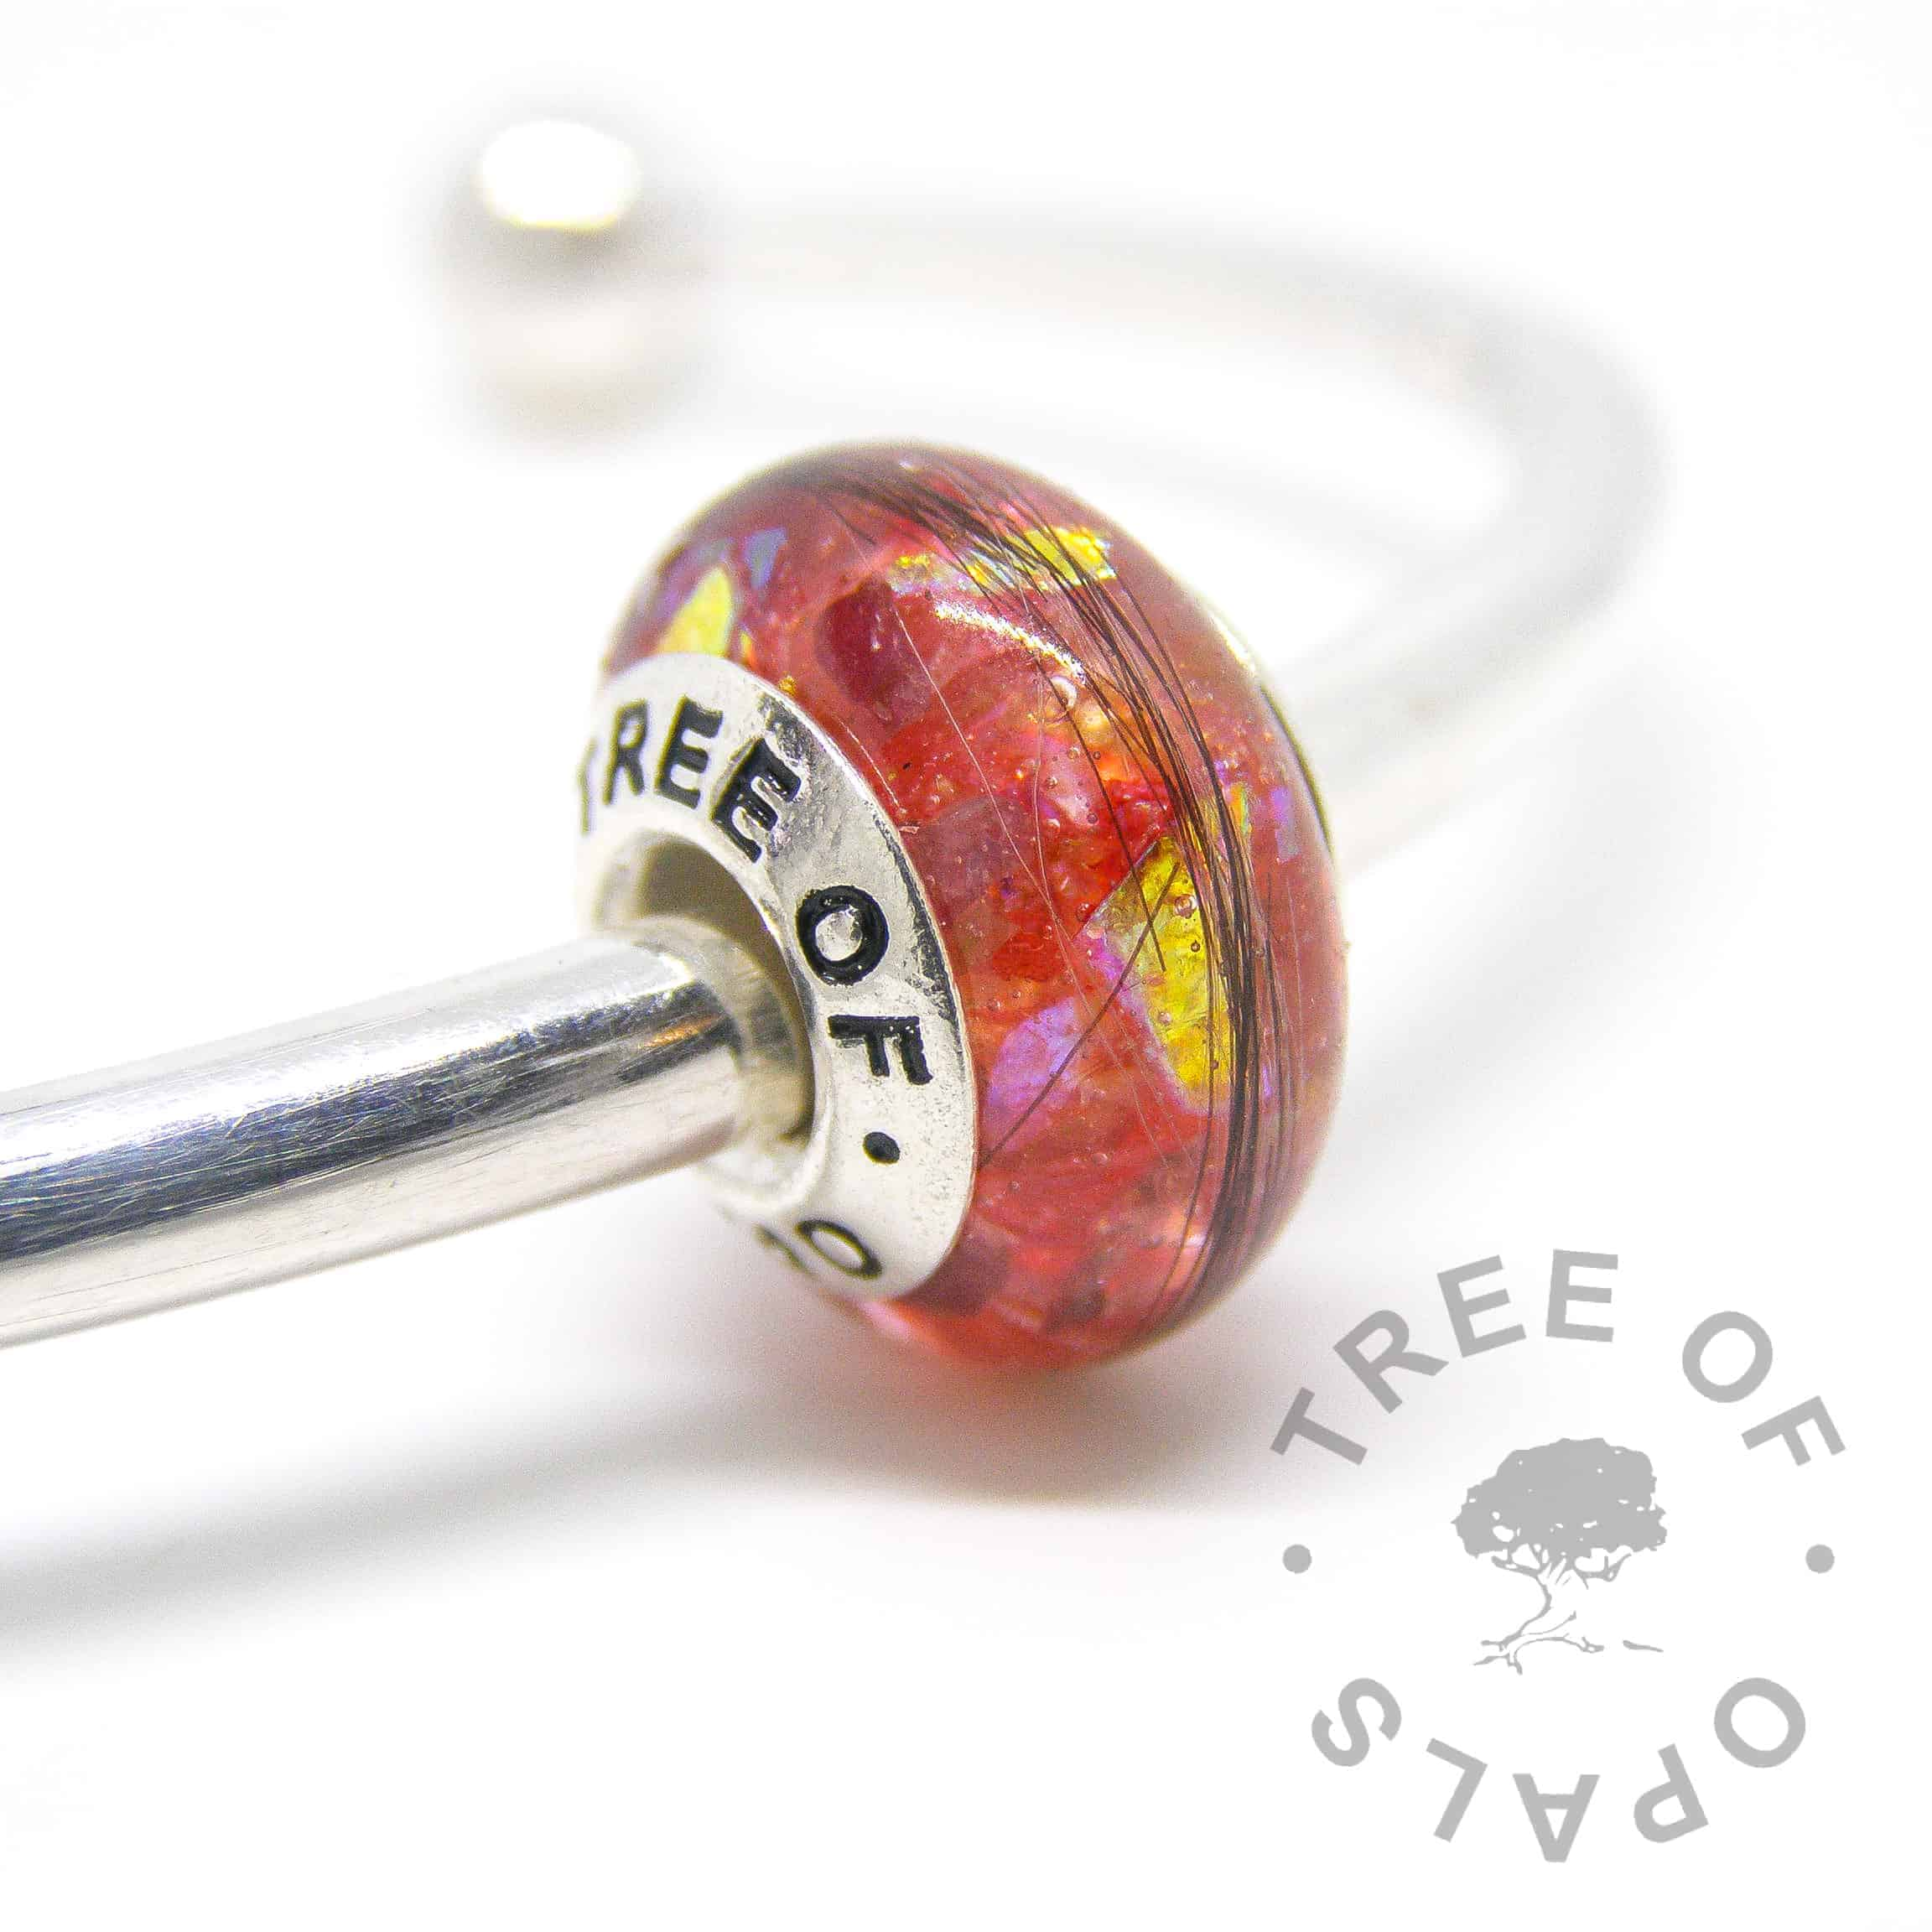 lock of hair charm bead in resin, ruby July birthstone, red opalescent flakes and genuine gold leaf guilded centre with a solid sterling silver Tree of Opals branded core